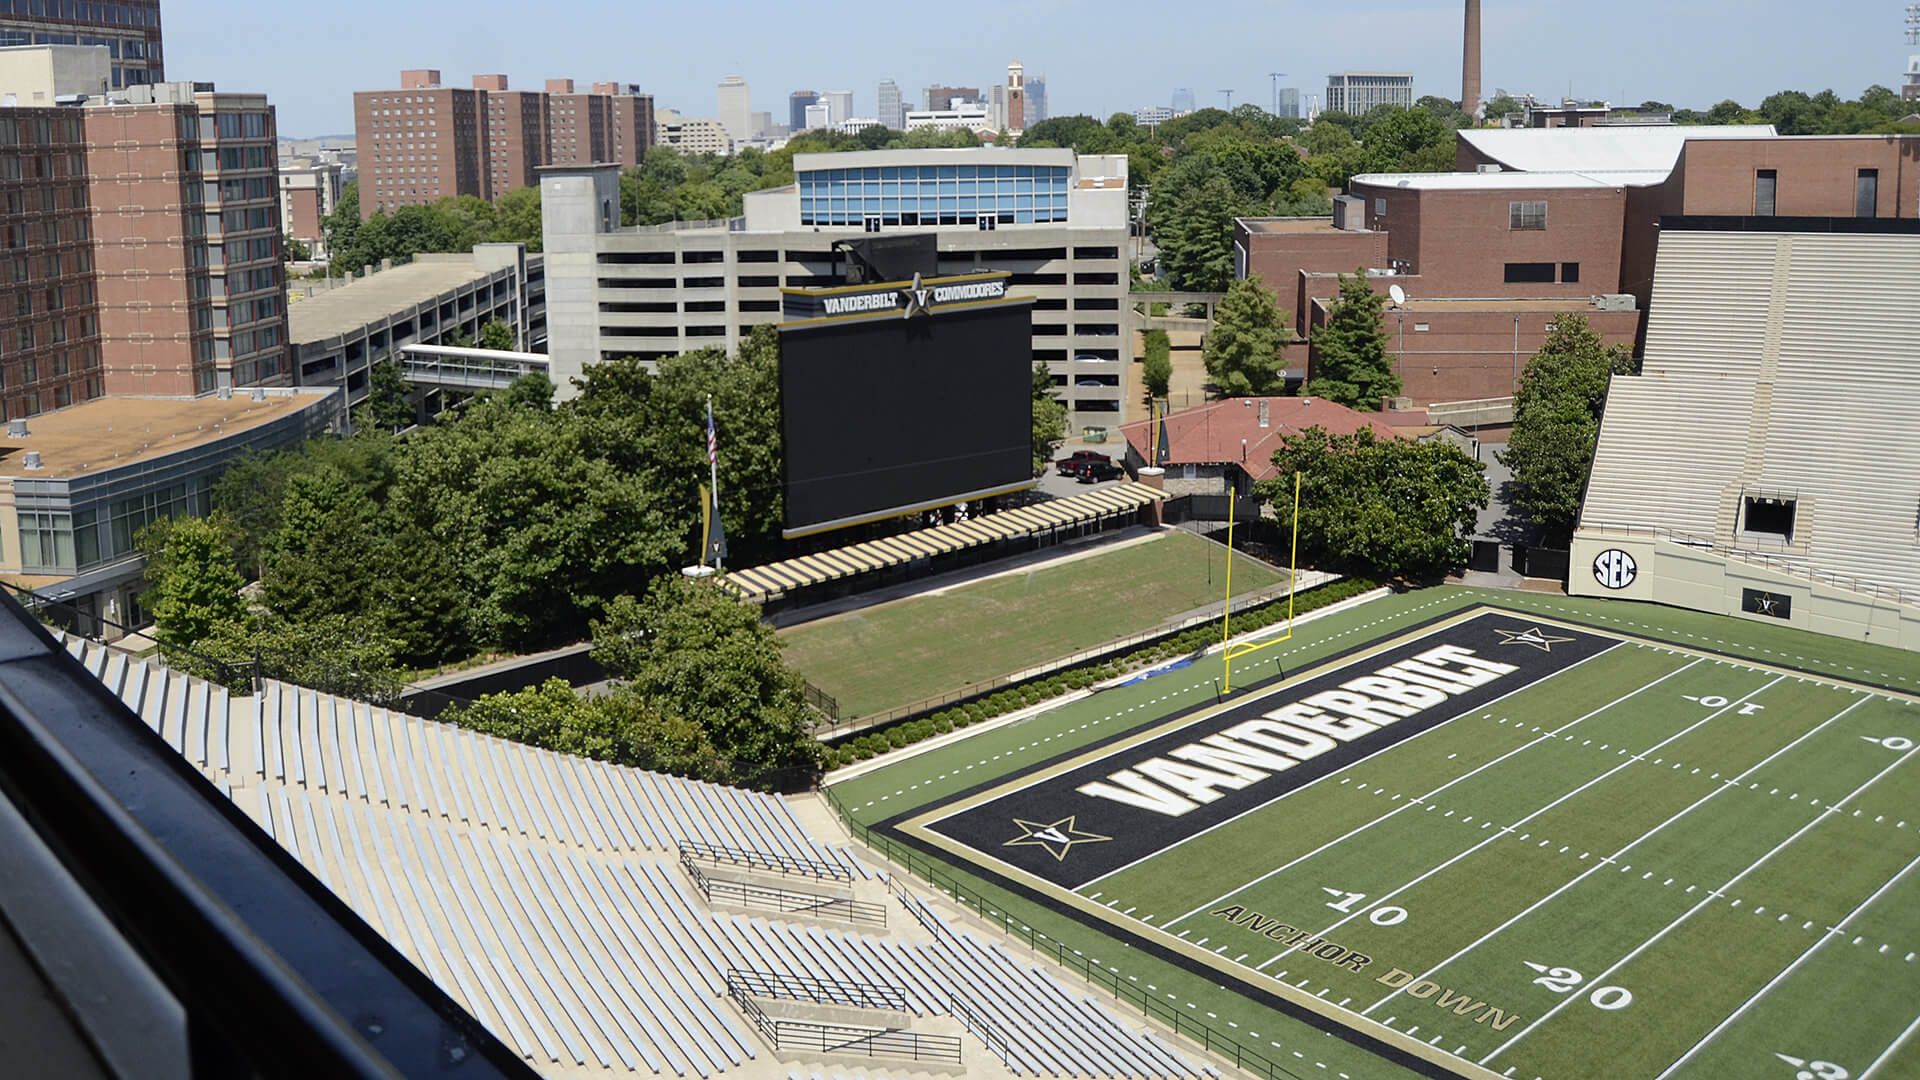 Flashback: High above Vanderbilt University Stadium